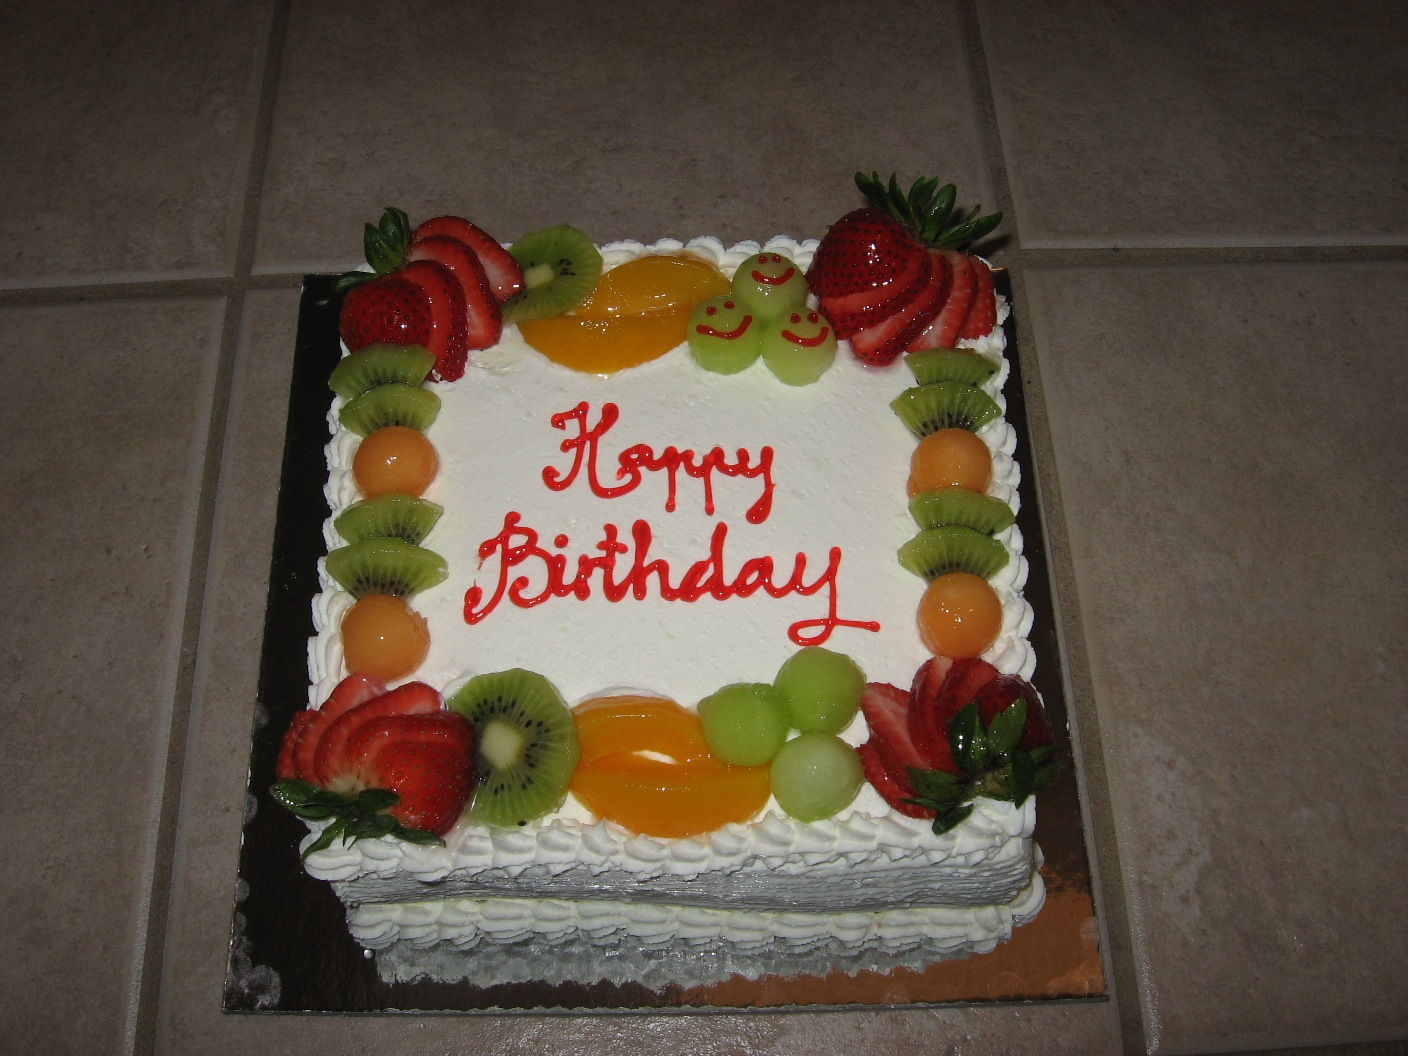 Cake Decoration with Fruits